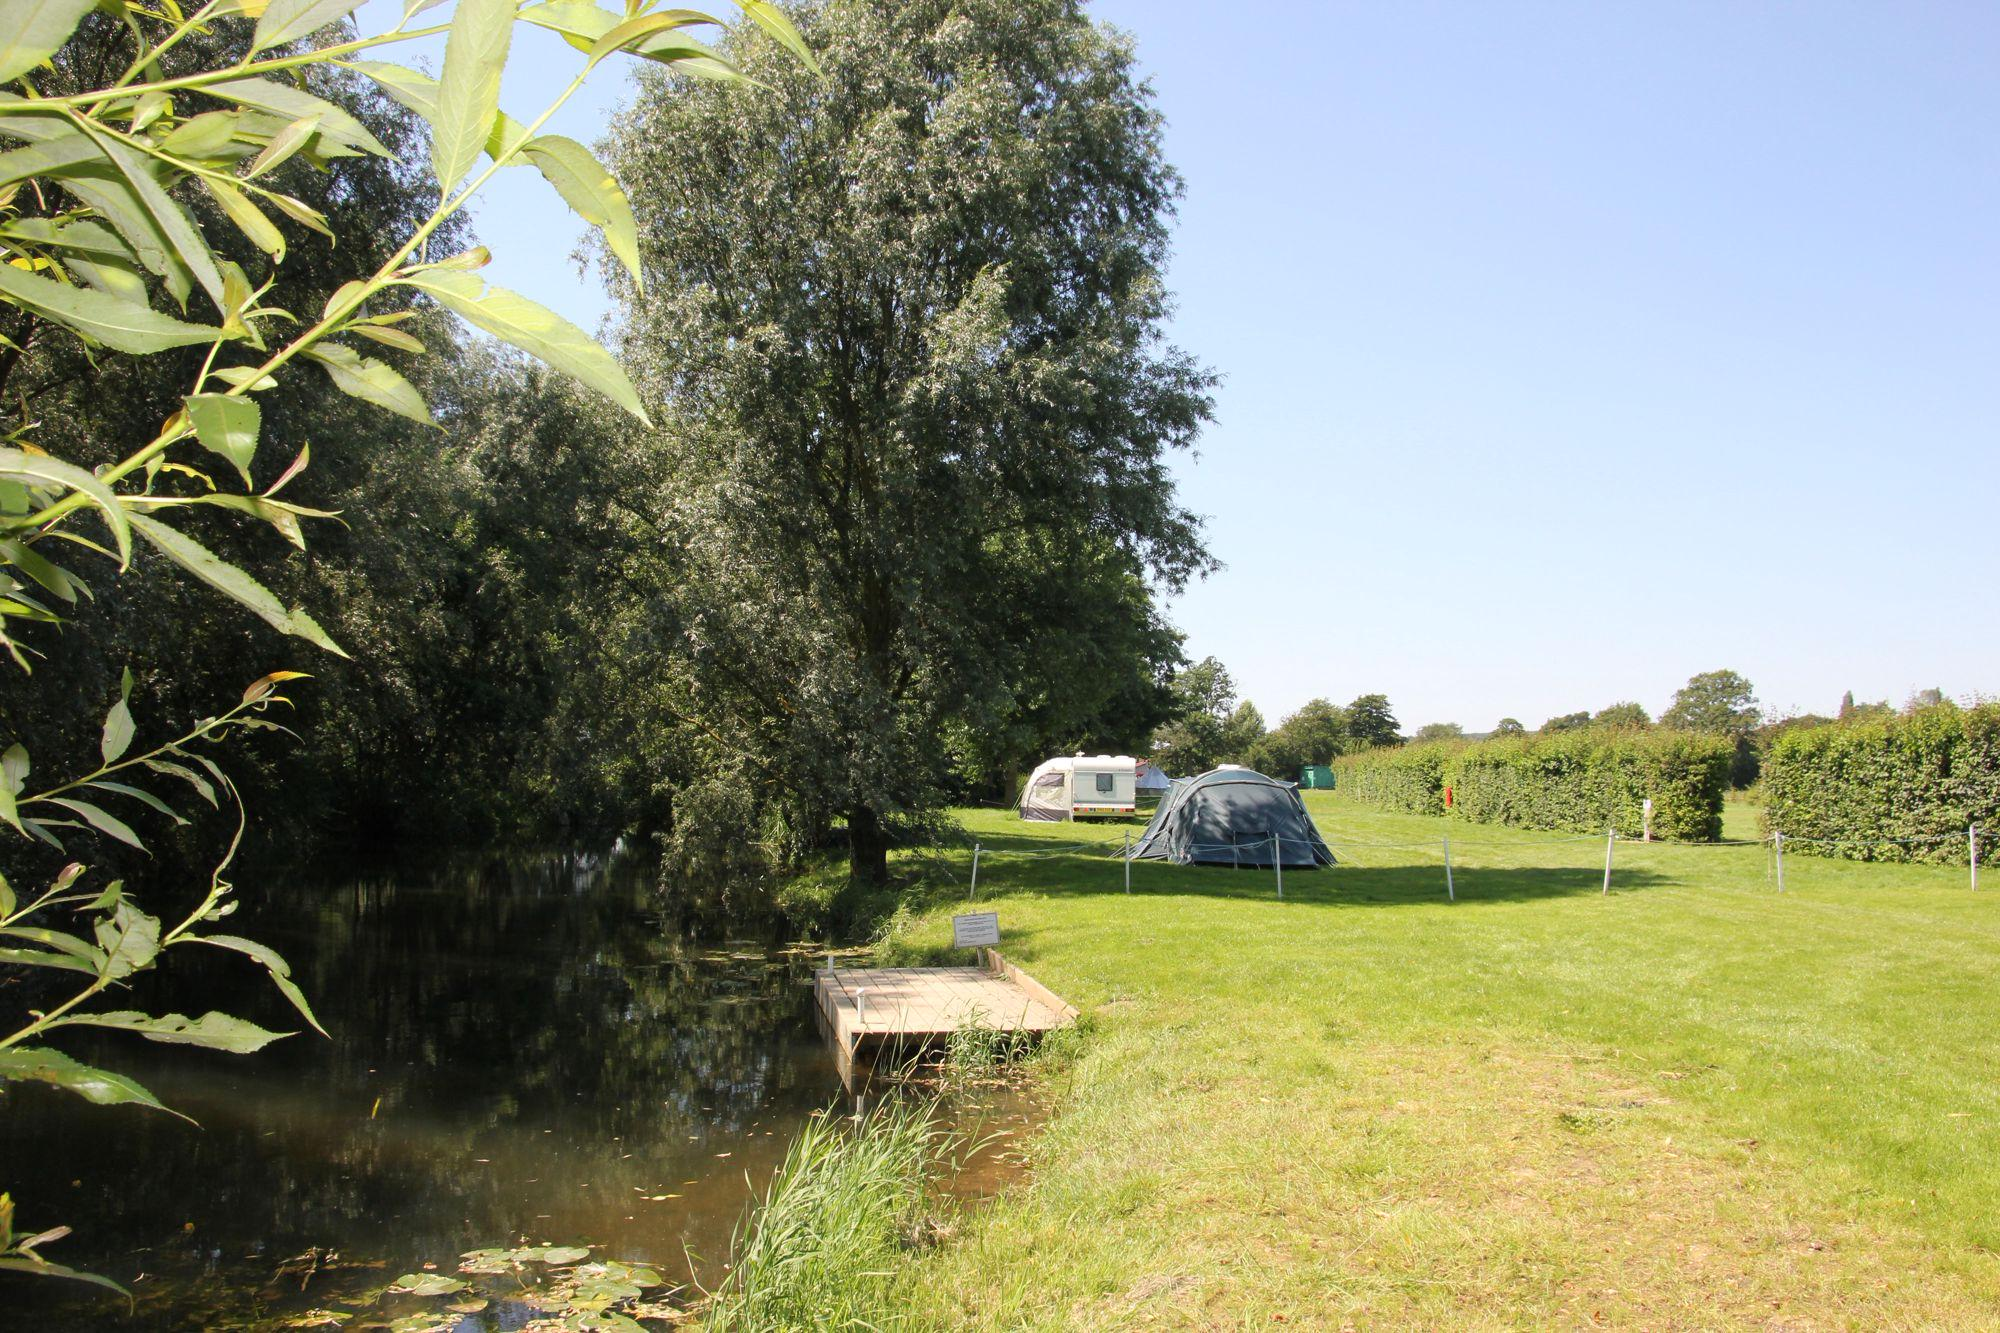 Sudbury Camping | Campsites near Sudbury, Suffolk